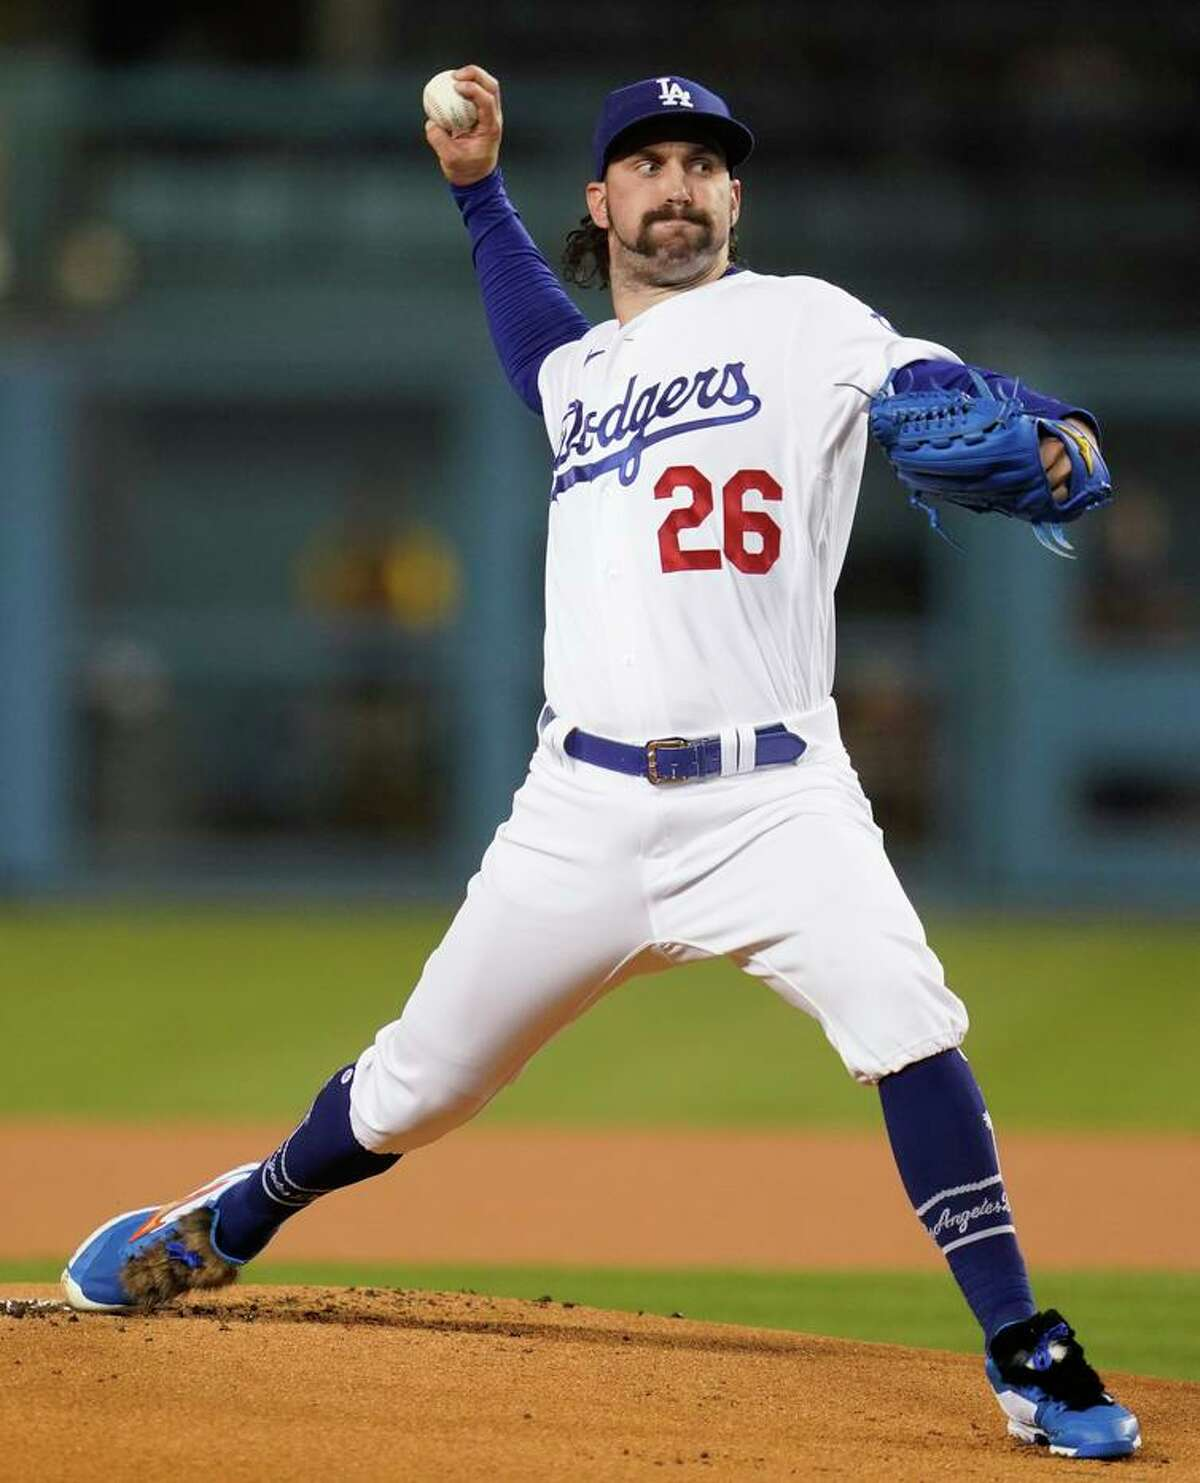 St. Mary's alum Tony Gonsolin has started three postseason games for the Dodgers.